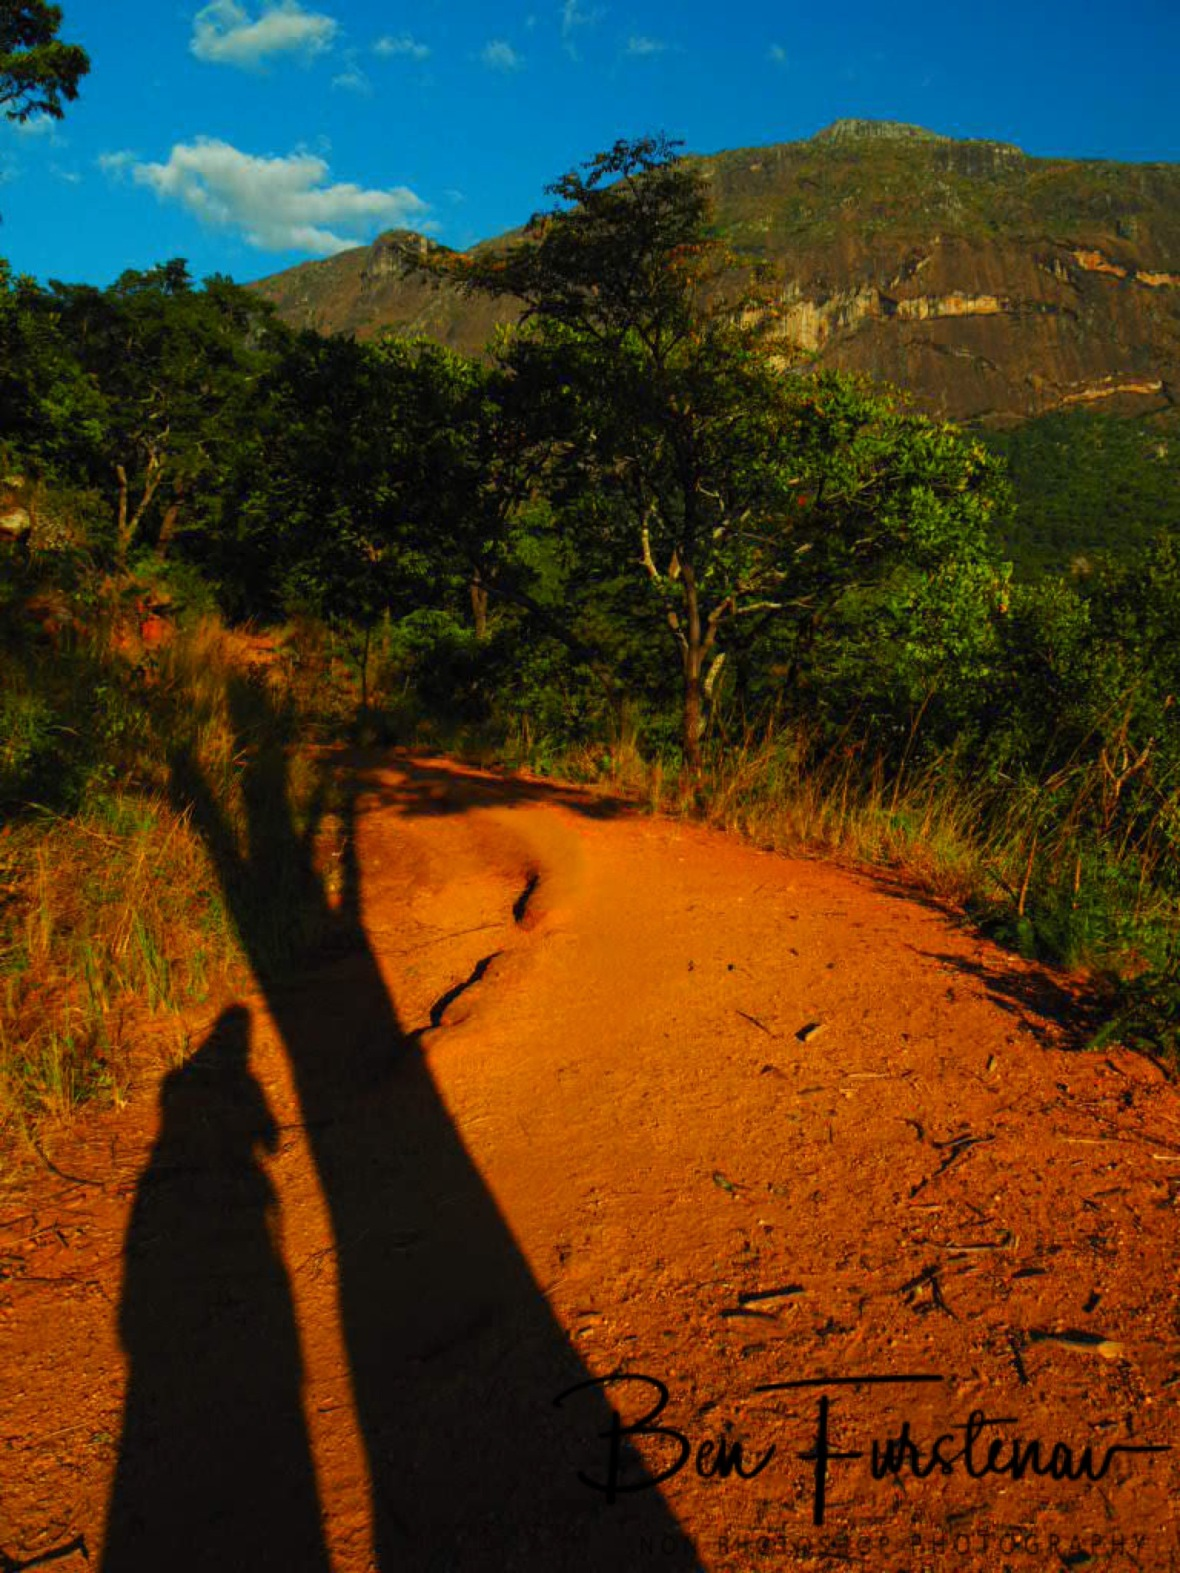 Long shadows on red soil, Mulanje Mountains, Malawi